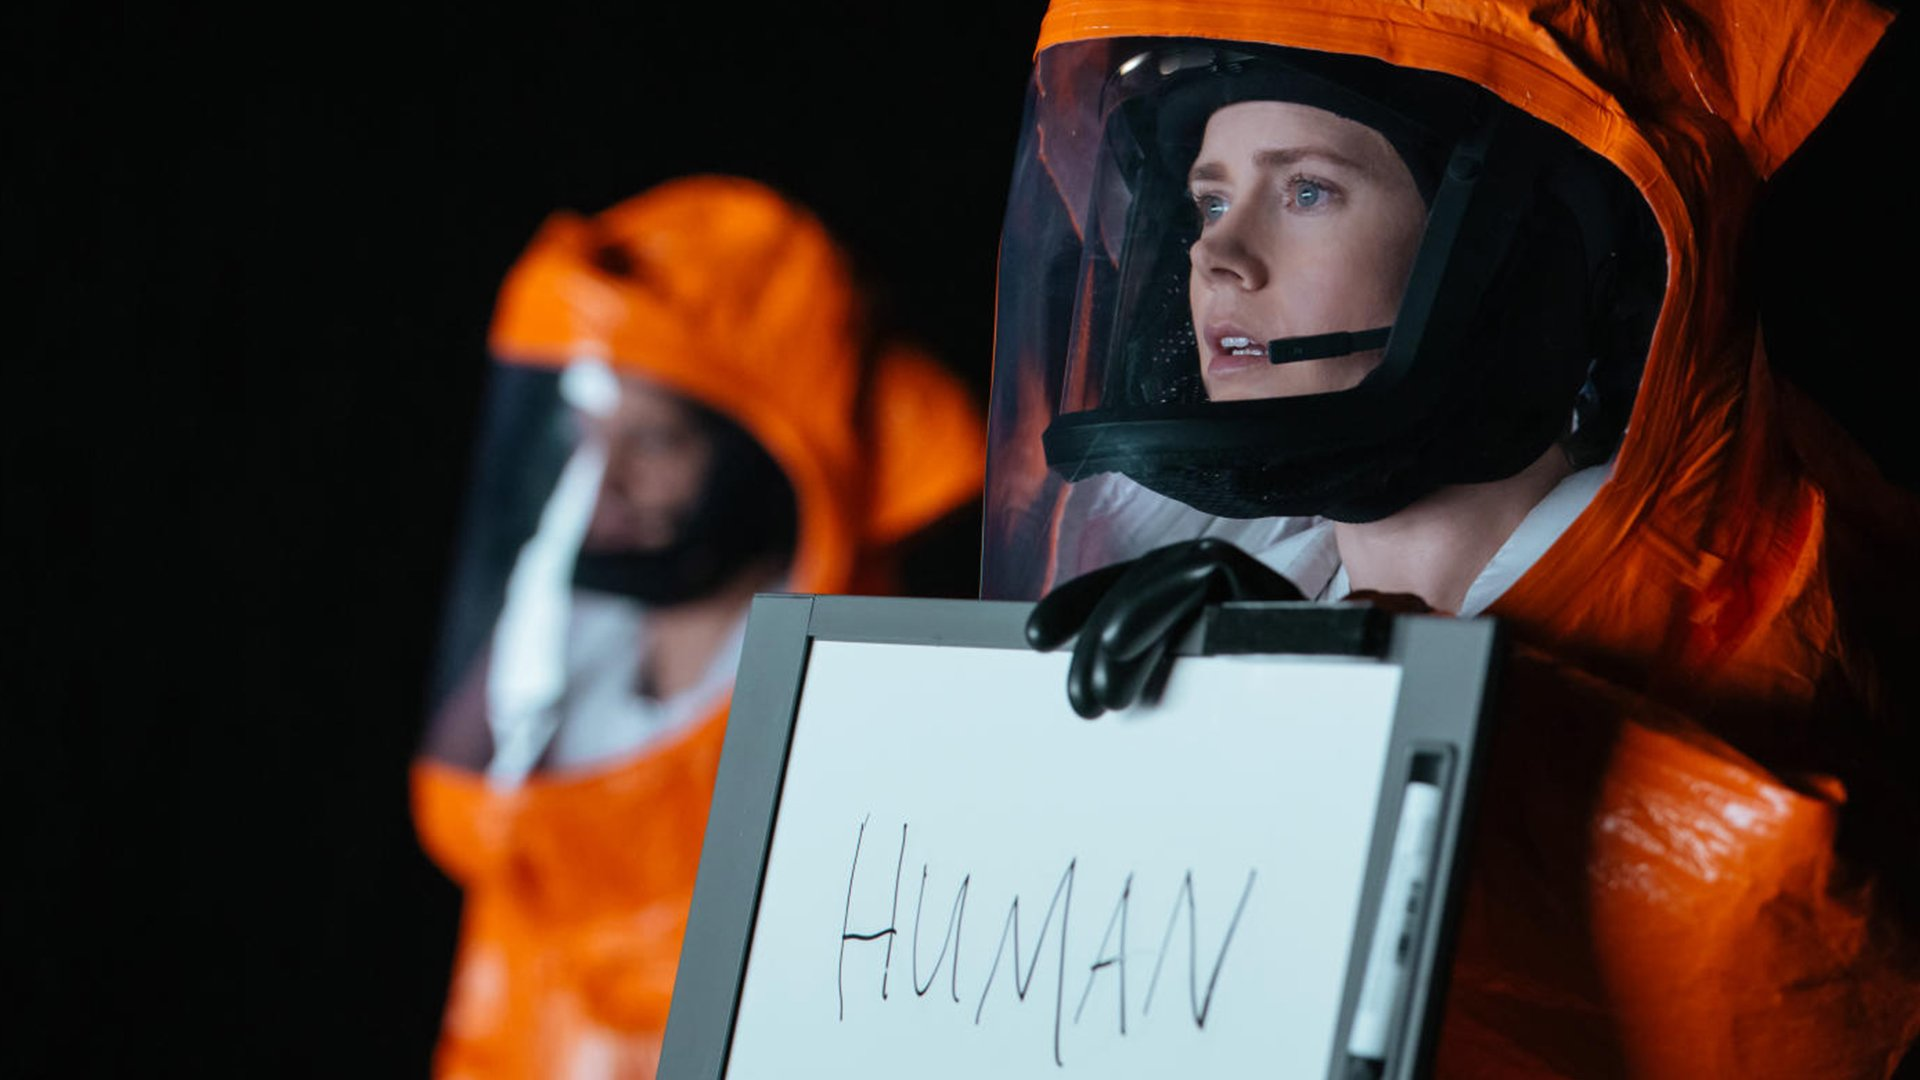 Arrival - Watch Movie 'Arrival' This Weekend